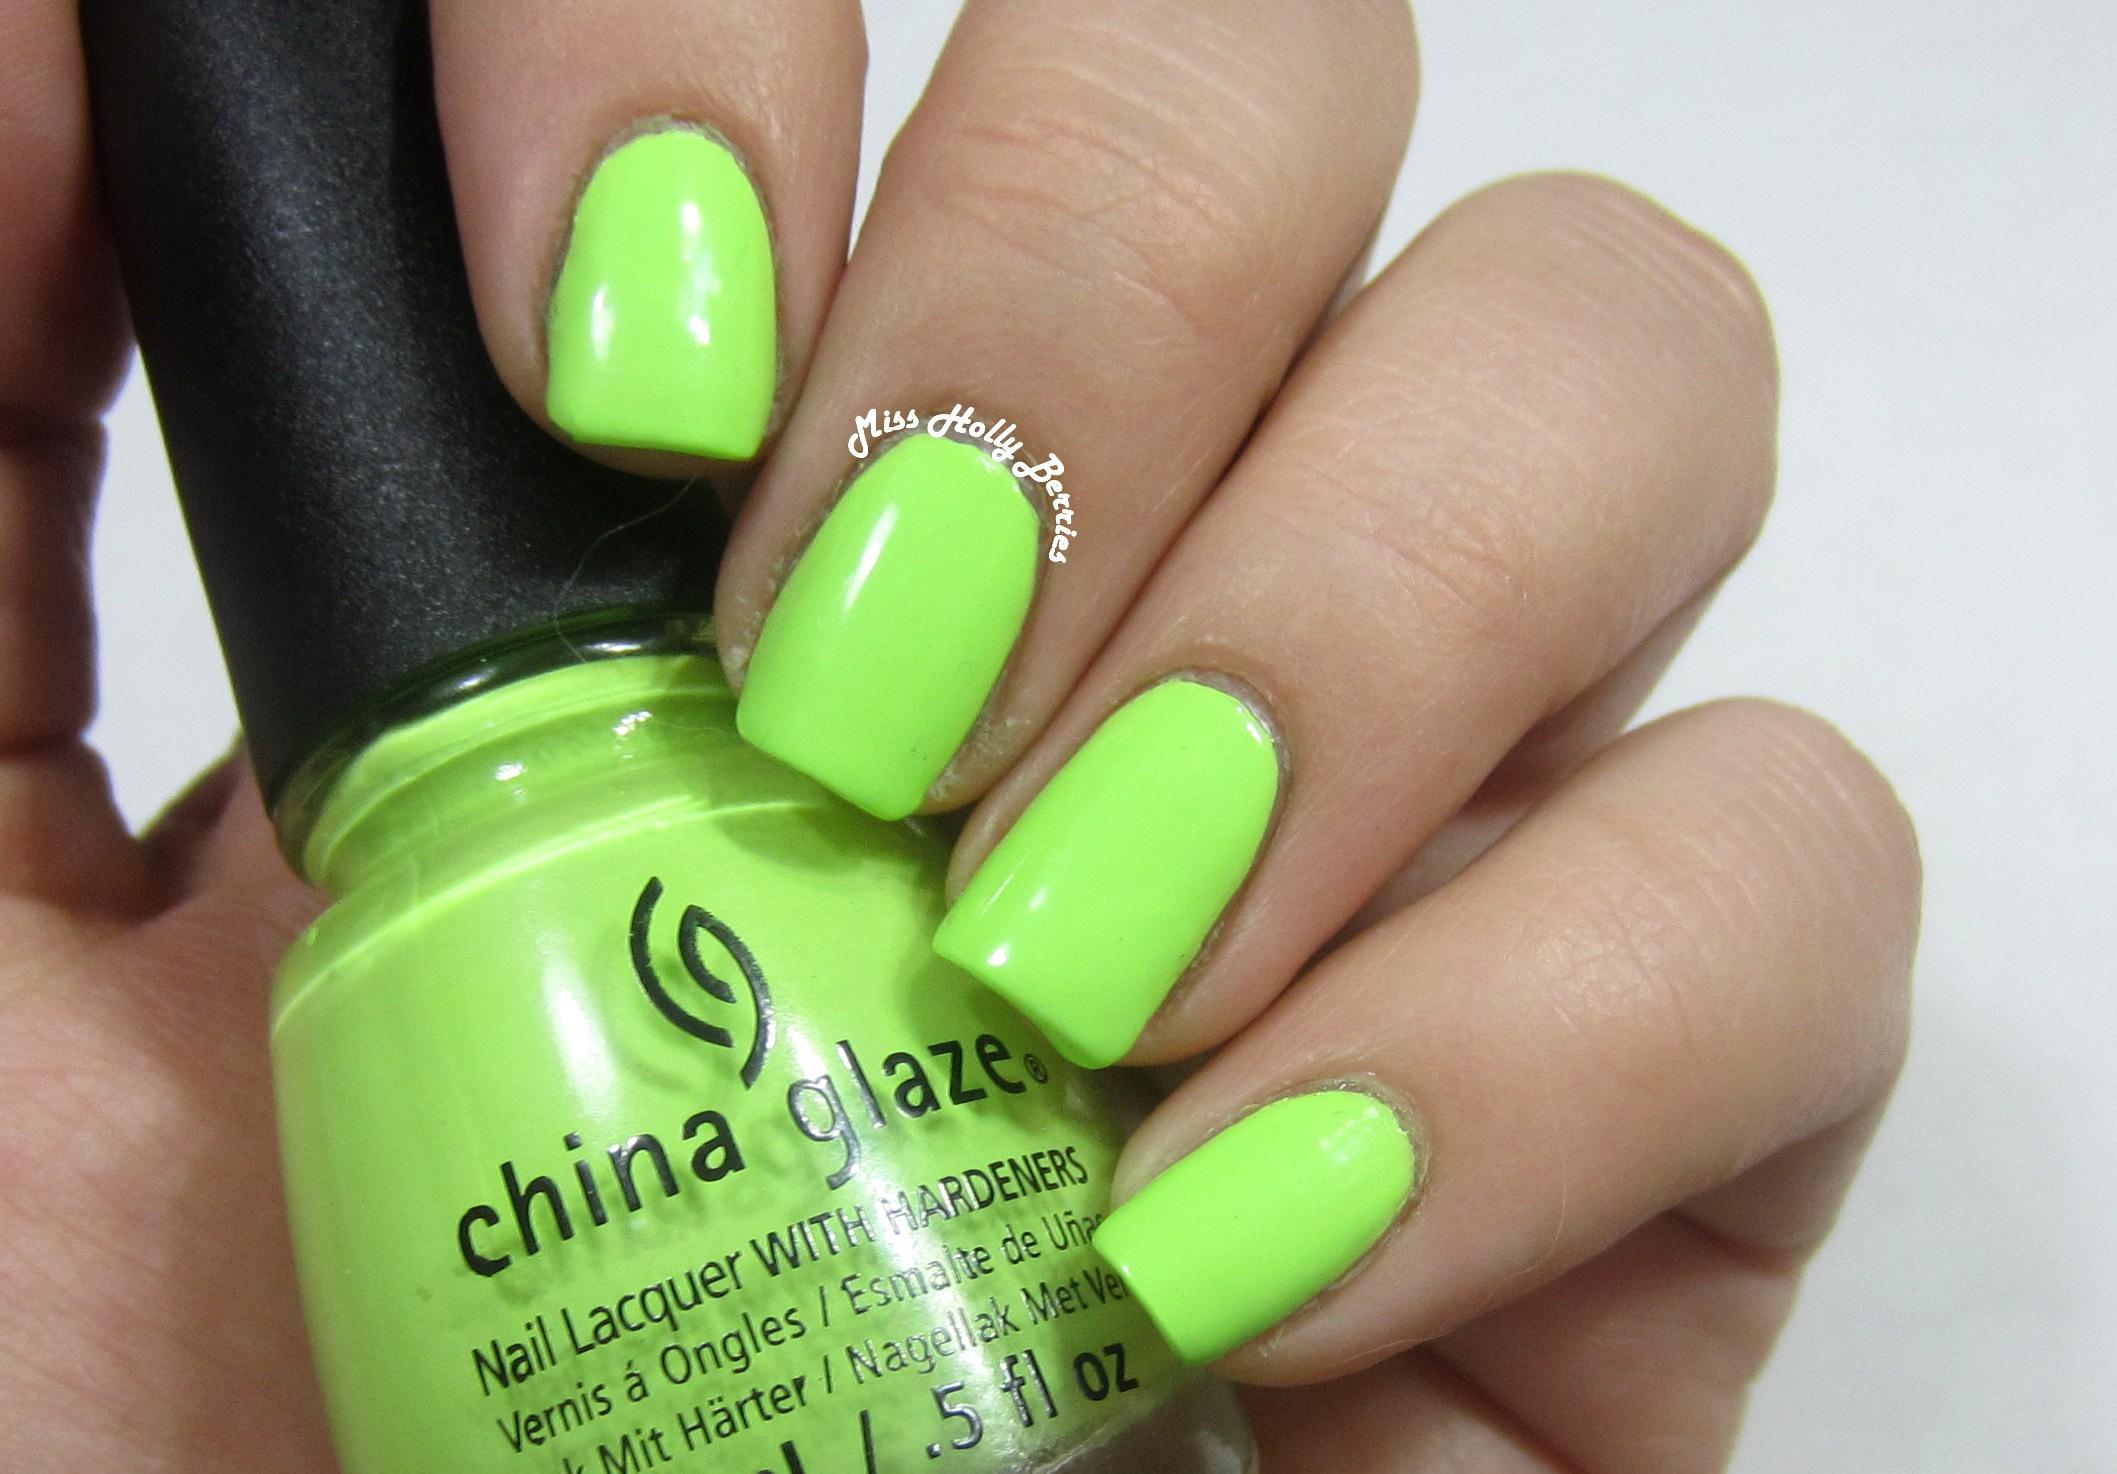 China glaze grass is lime greener misshollyberries seriously this polish is bright when i heard that china glaze was releasing yet another pastel spring nail polish collection i couldnt stop rolling my nvjuhfo Gallery